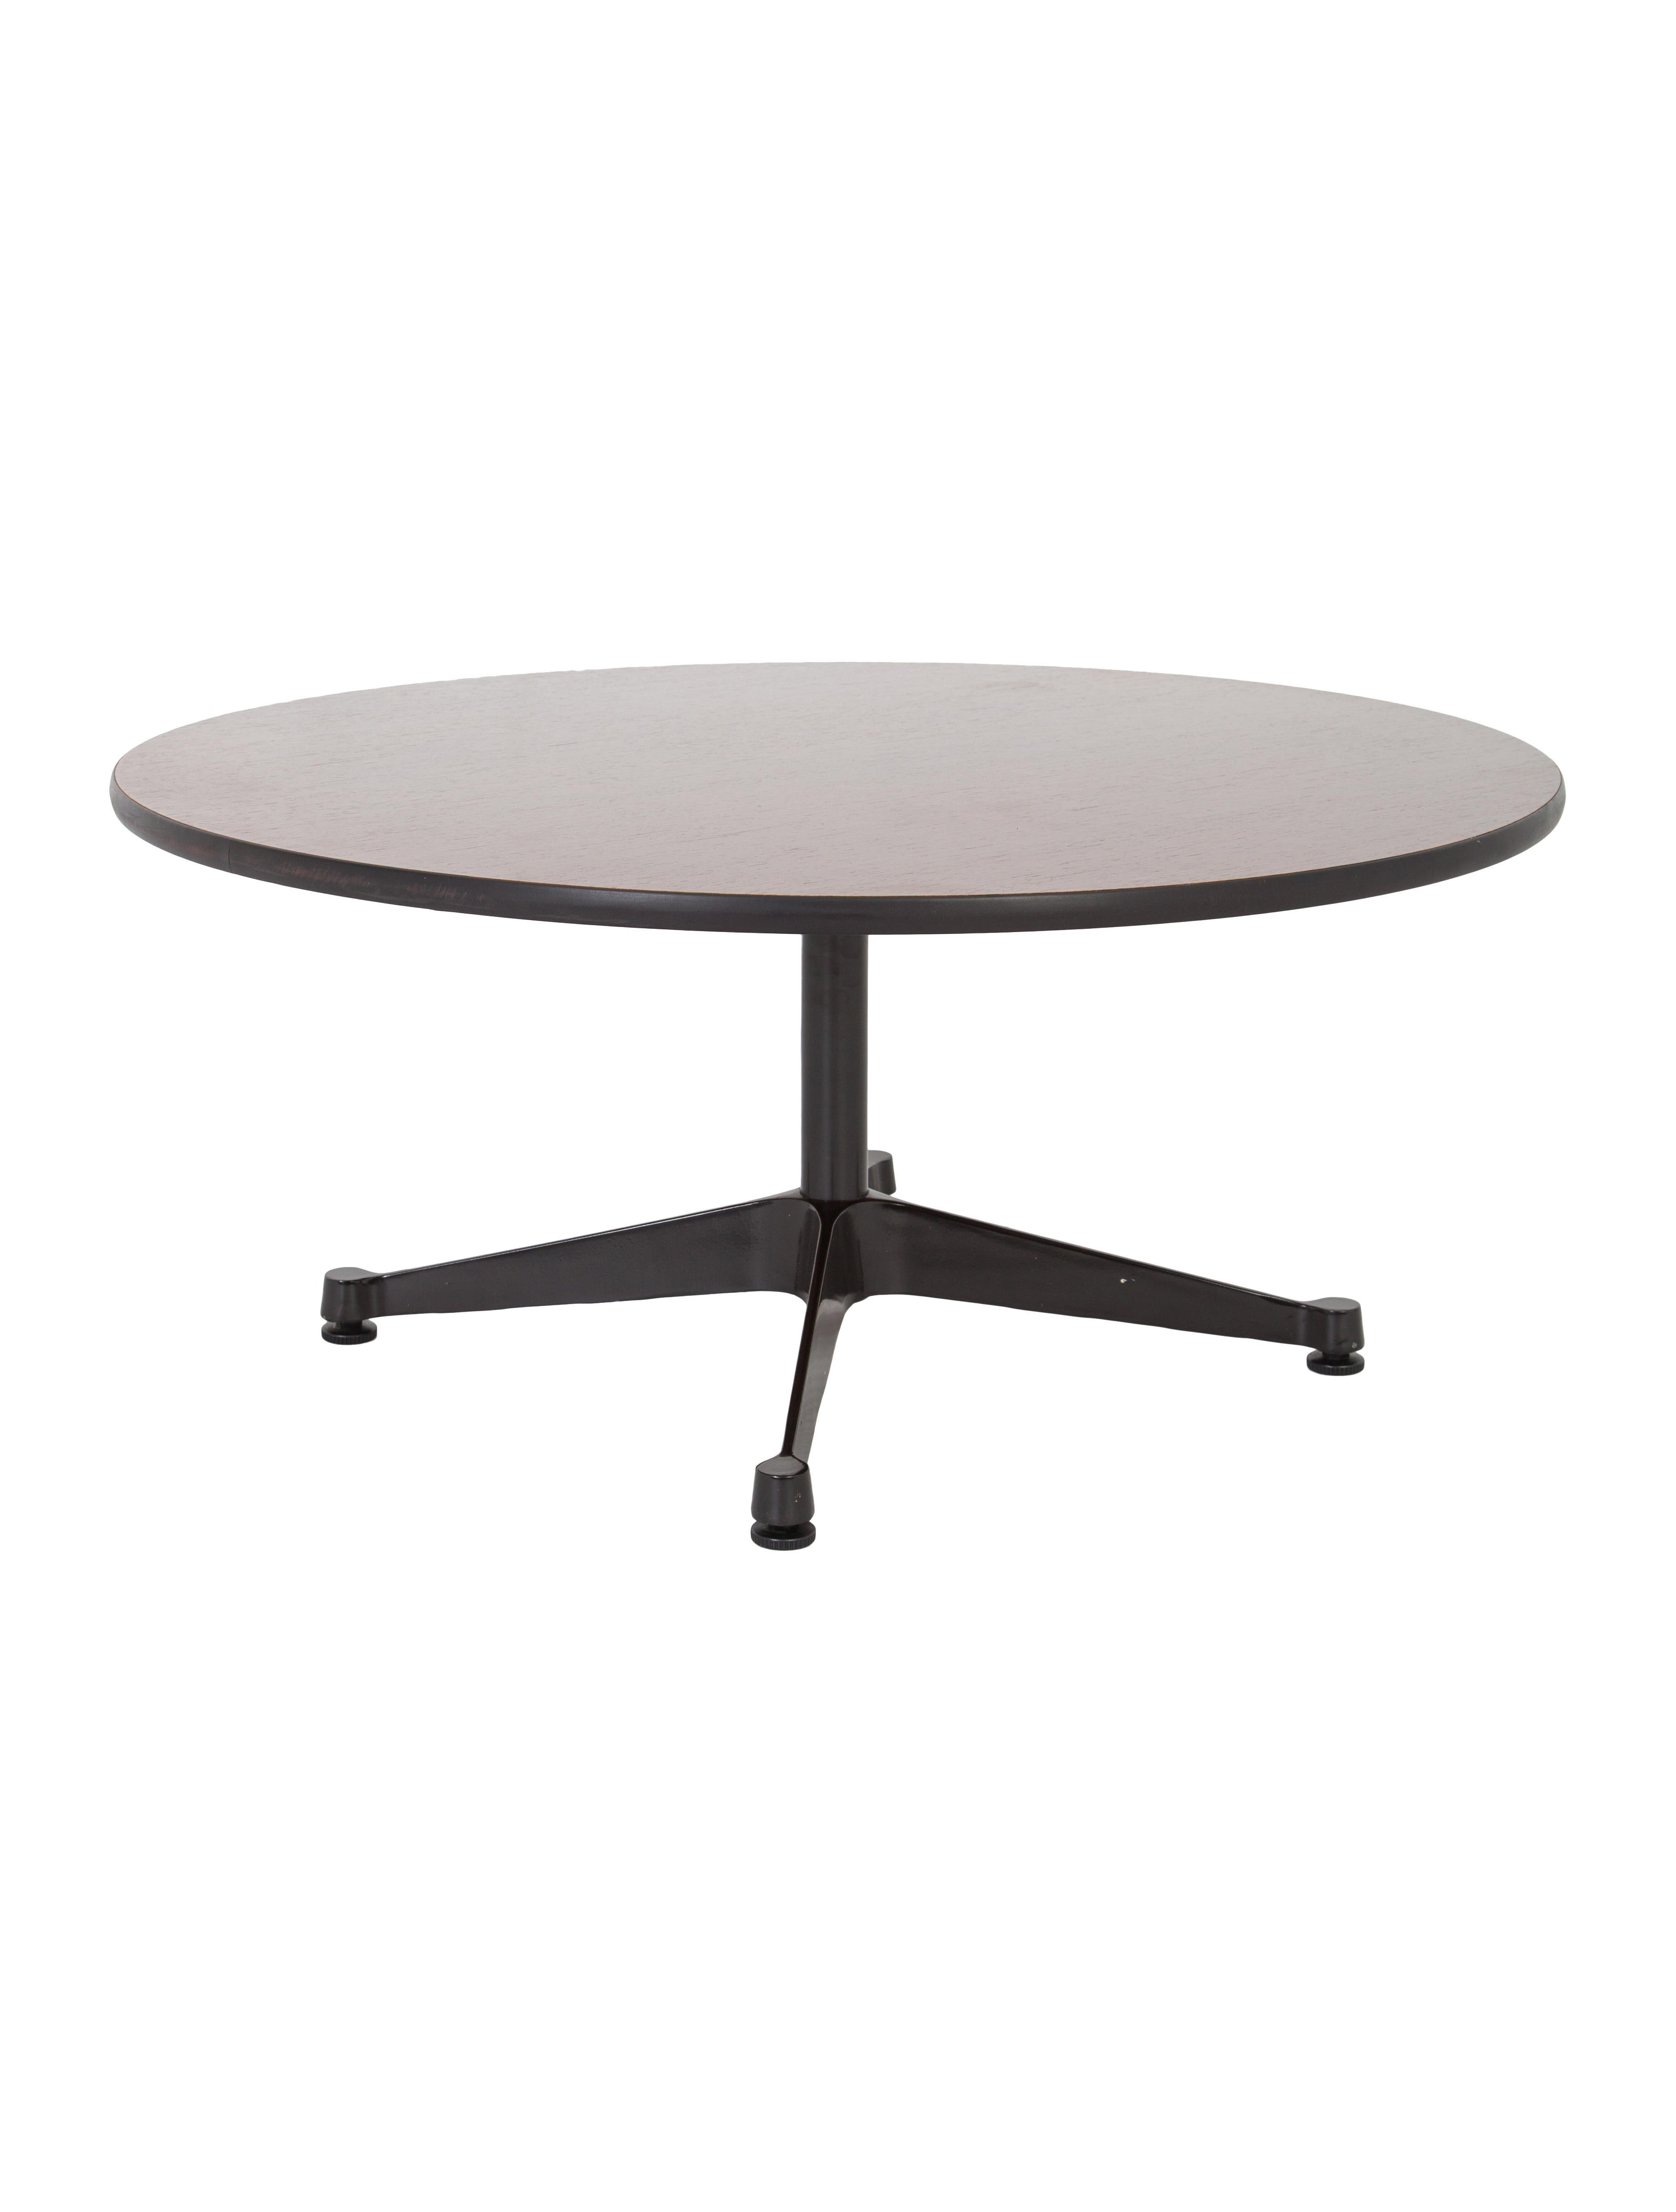 herman miller eames coffee table furniture hrmil20057. Black Bedroom Furniture Sets. Home Design Ideas